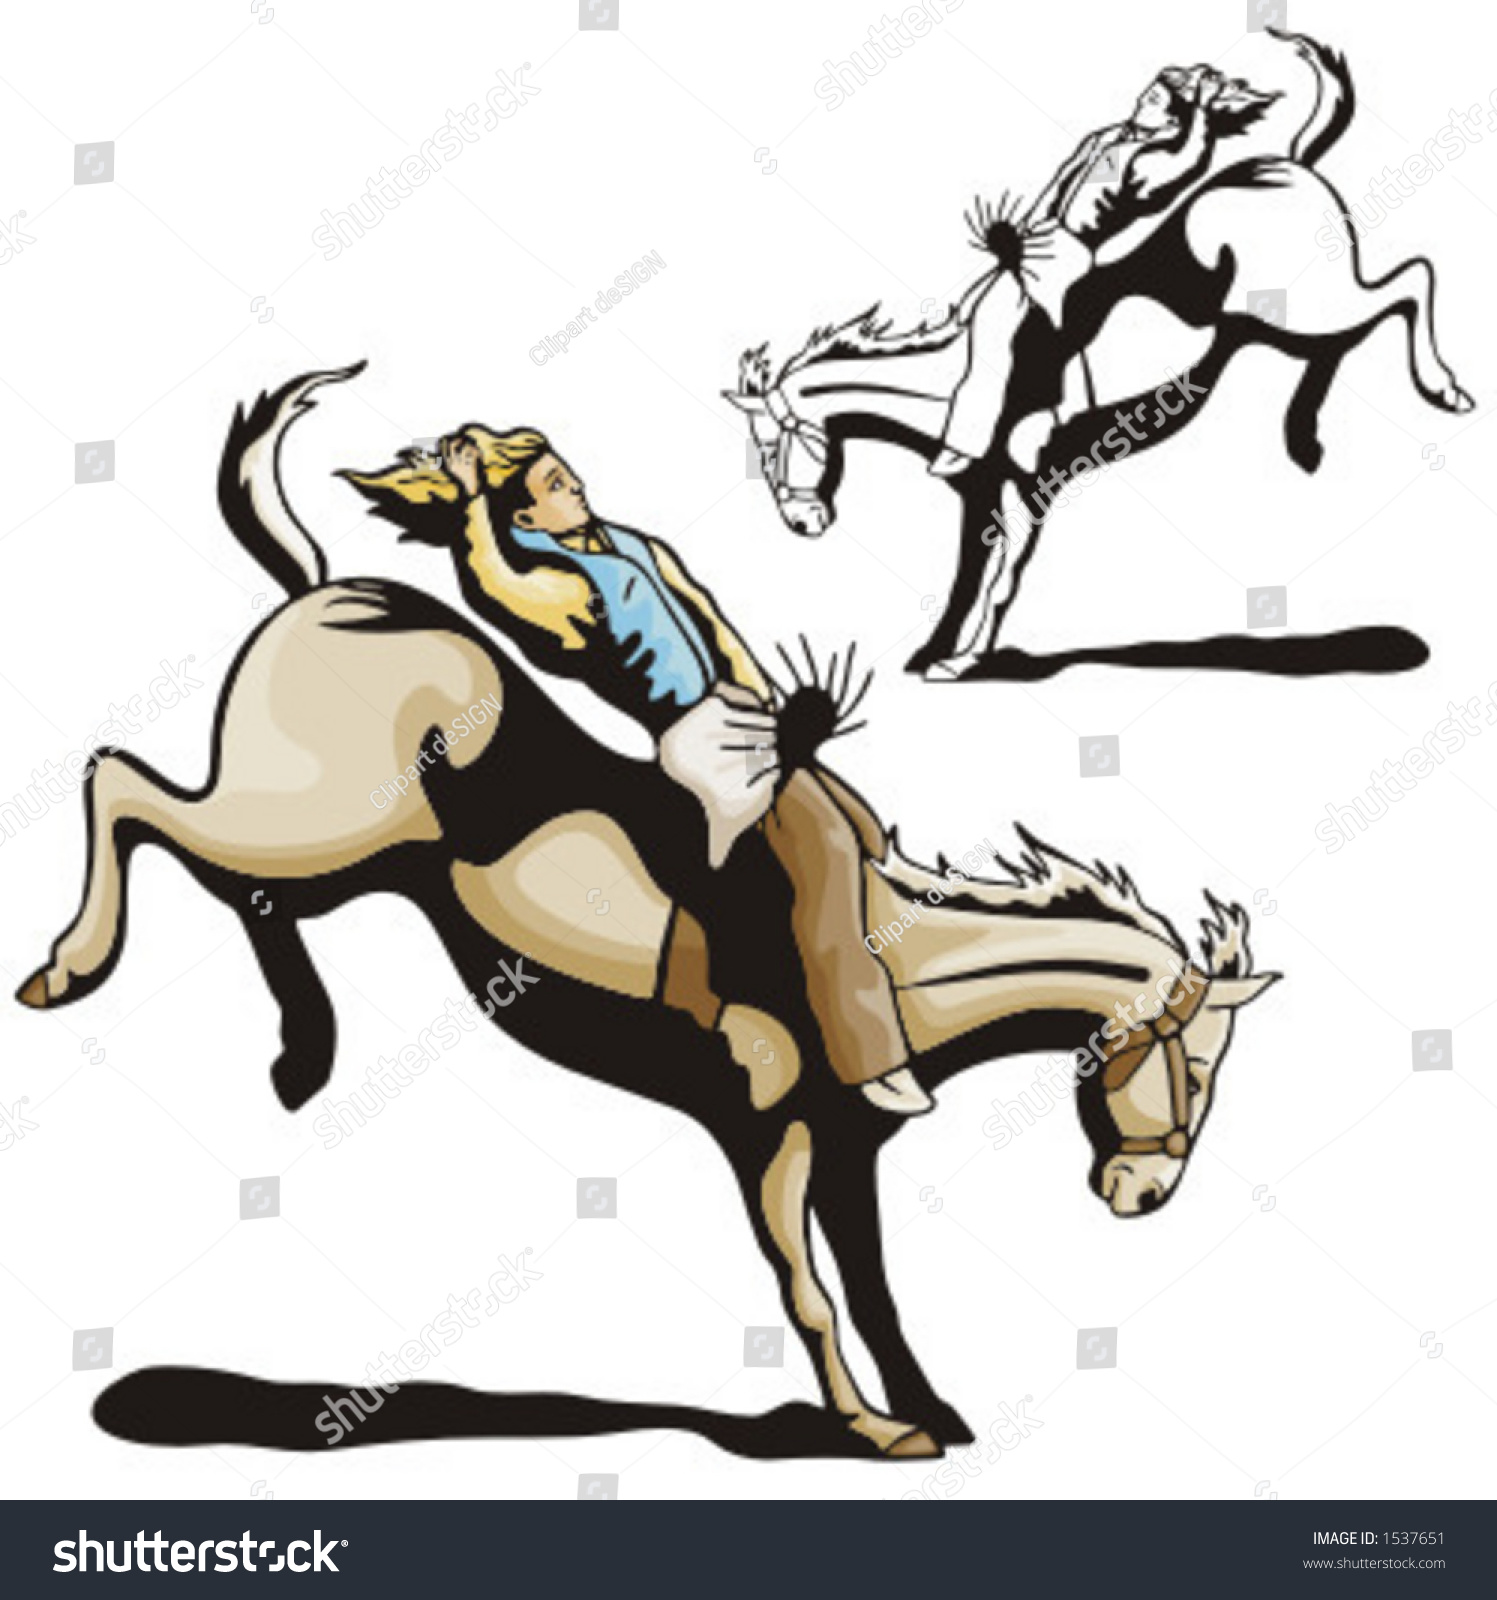 Illustration Rodeo Cowgirl Riding Bull Stock Vector 1537651 ...